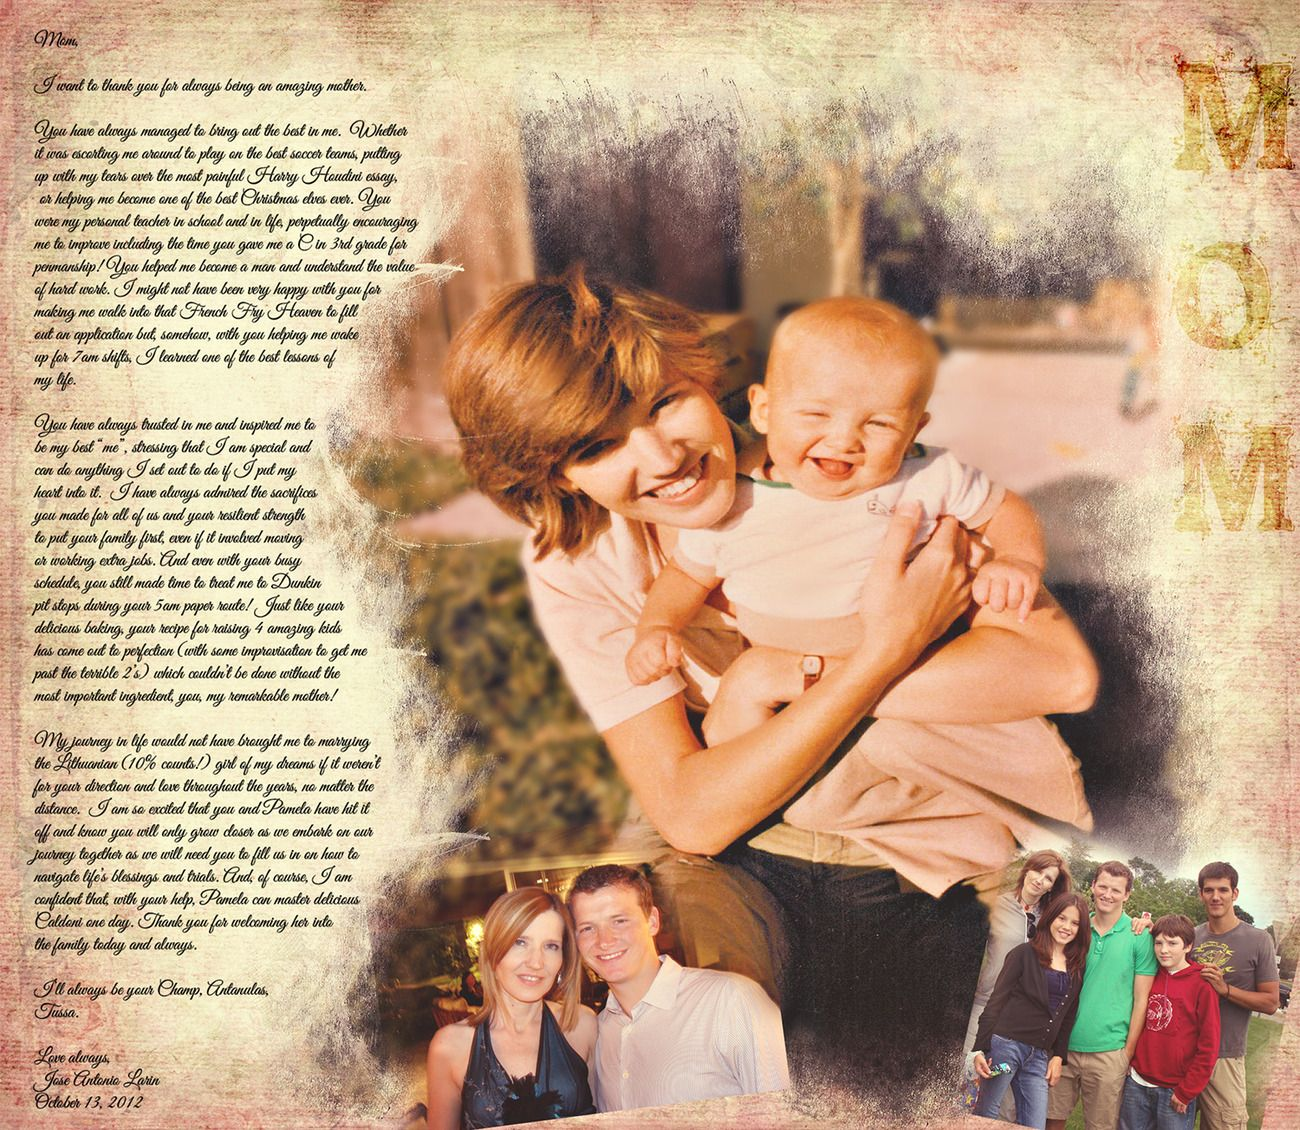 Mother Son Song For Wedding: Custom Personalized Photo Editing Mother Son Photo Art @PP